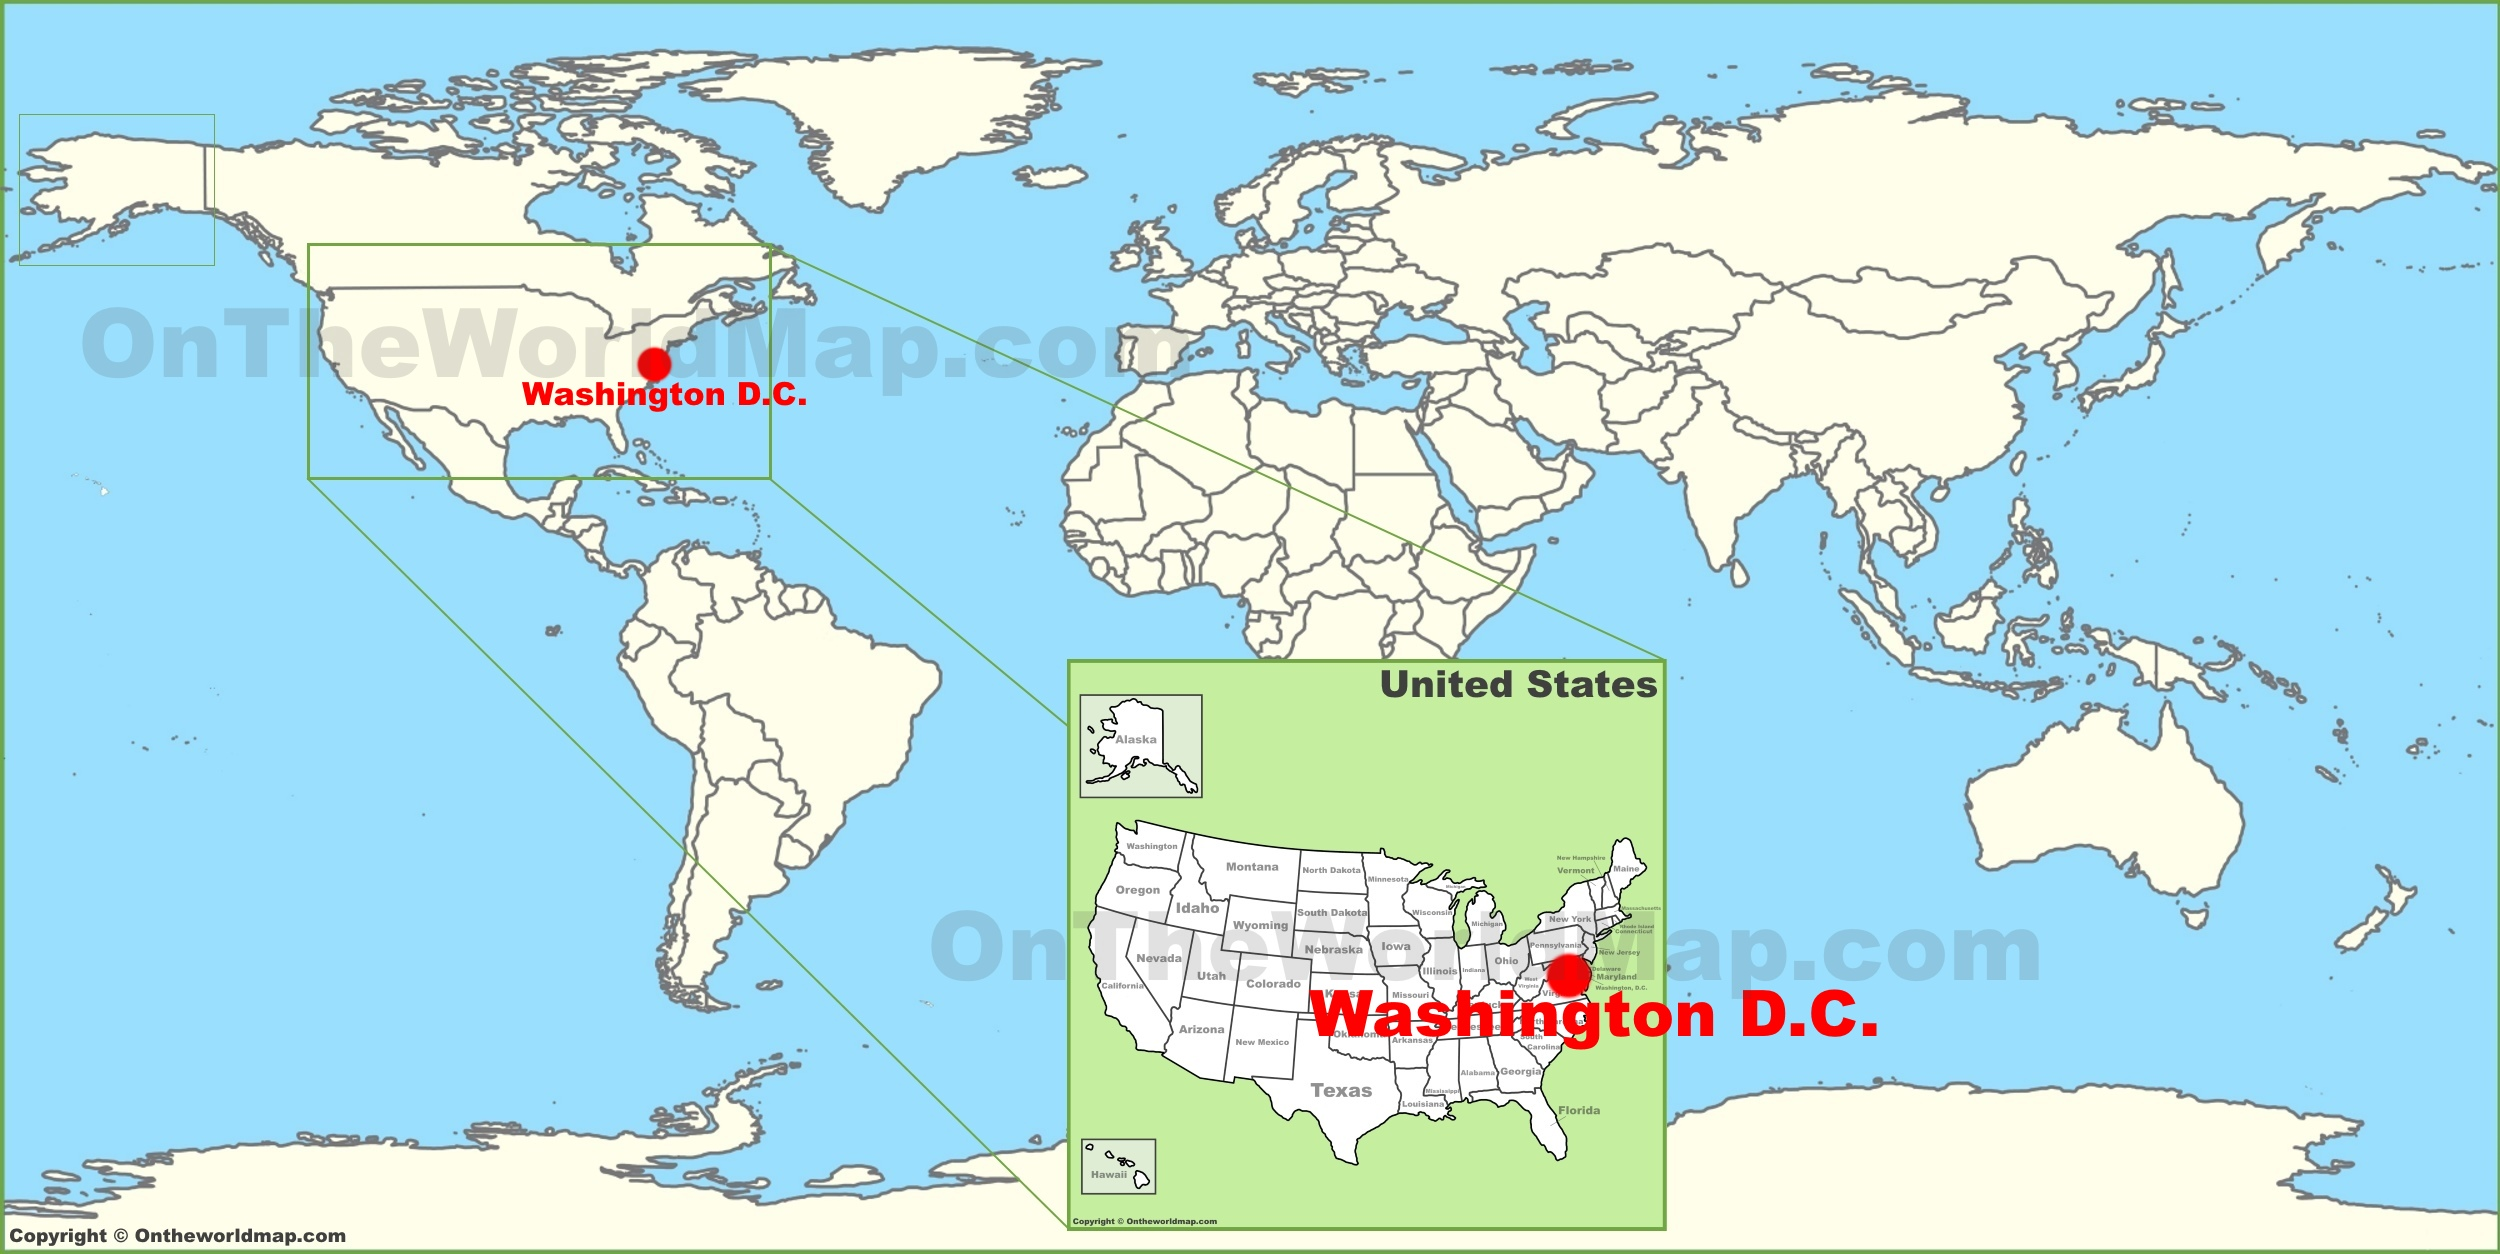 Washington On Map Washington D.C. on the World Map Washington On Map